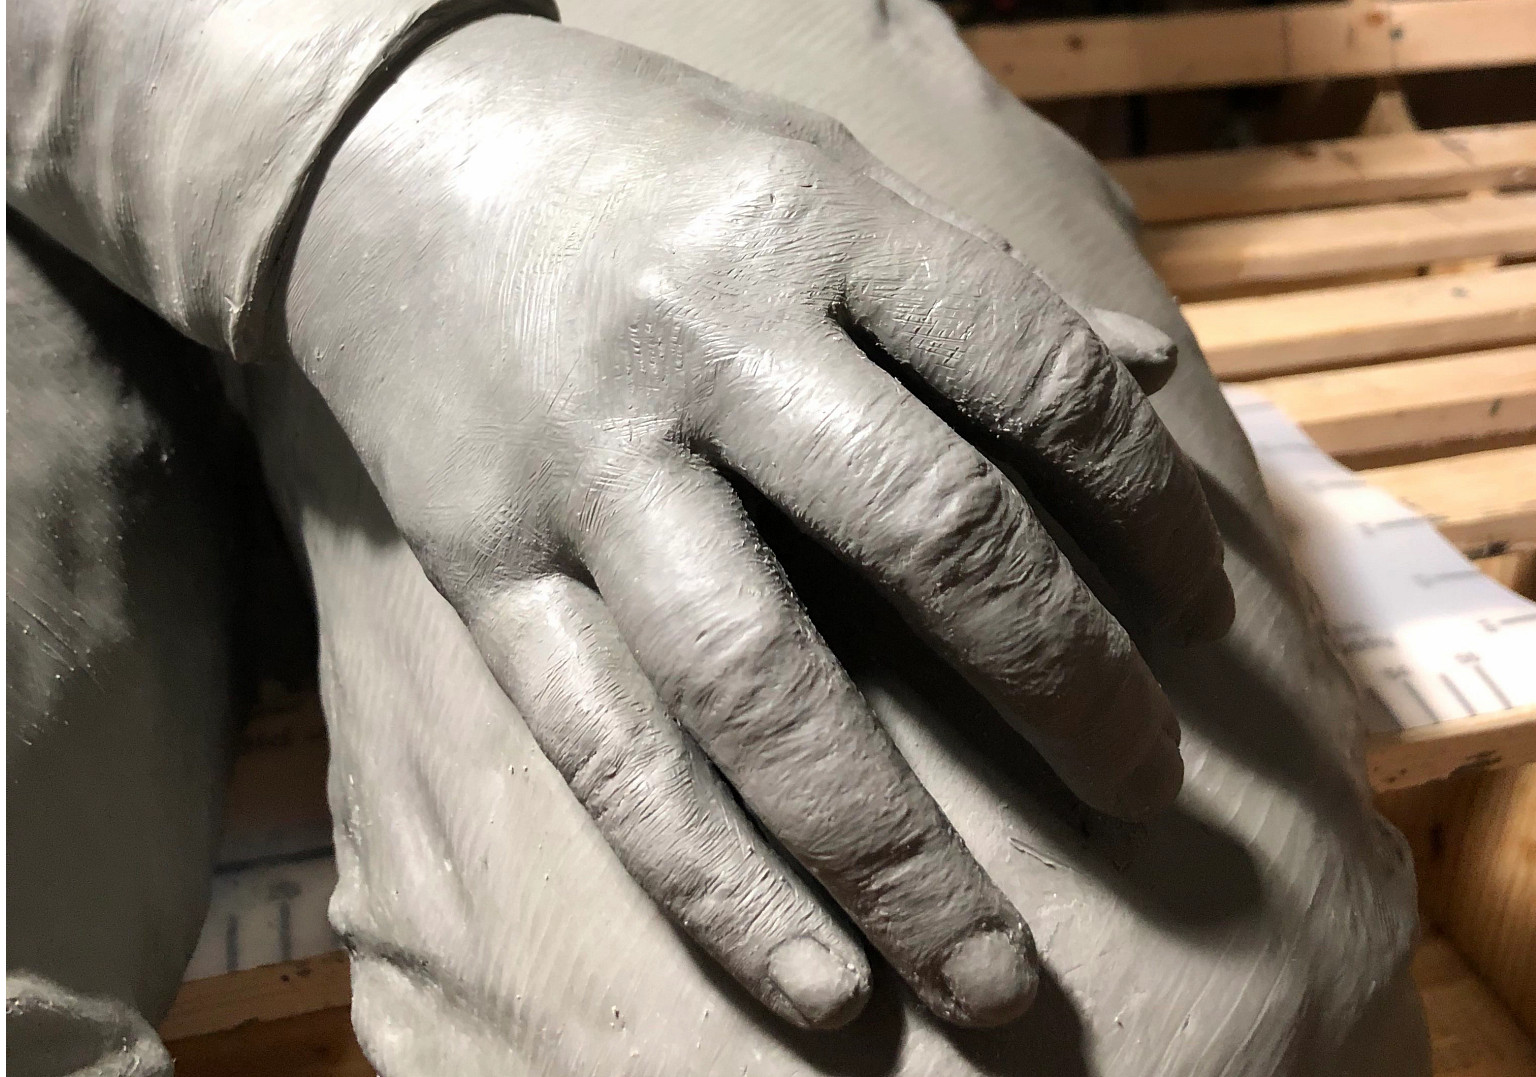 A hand sculpted from clay